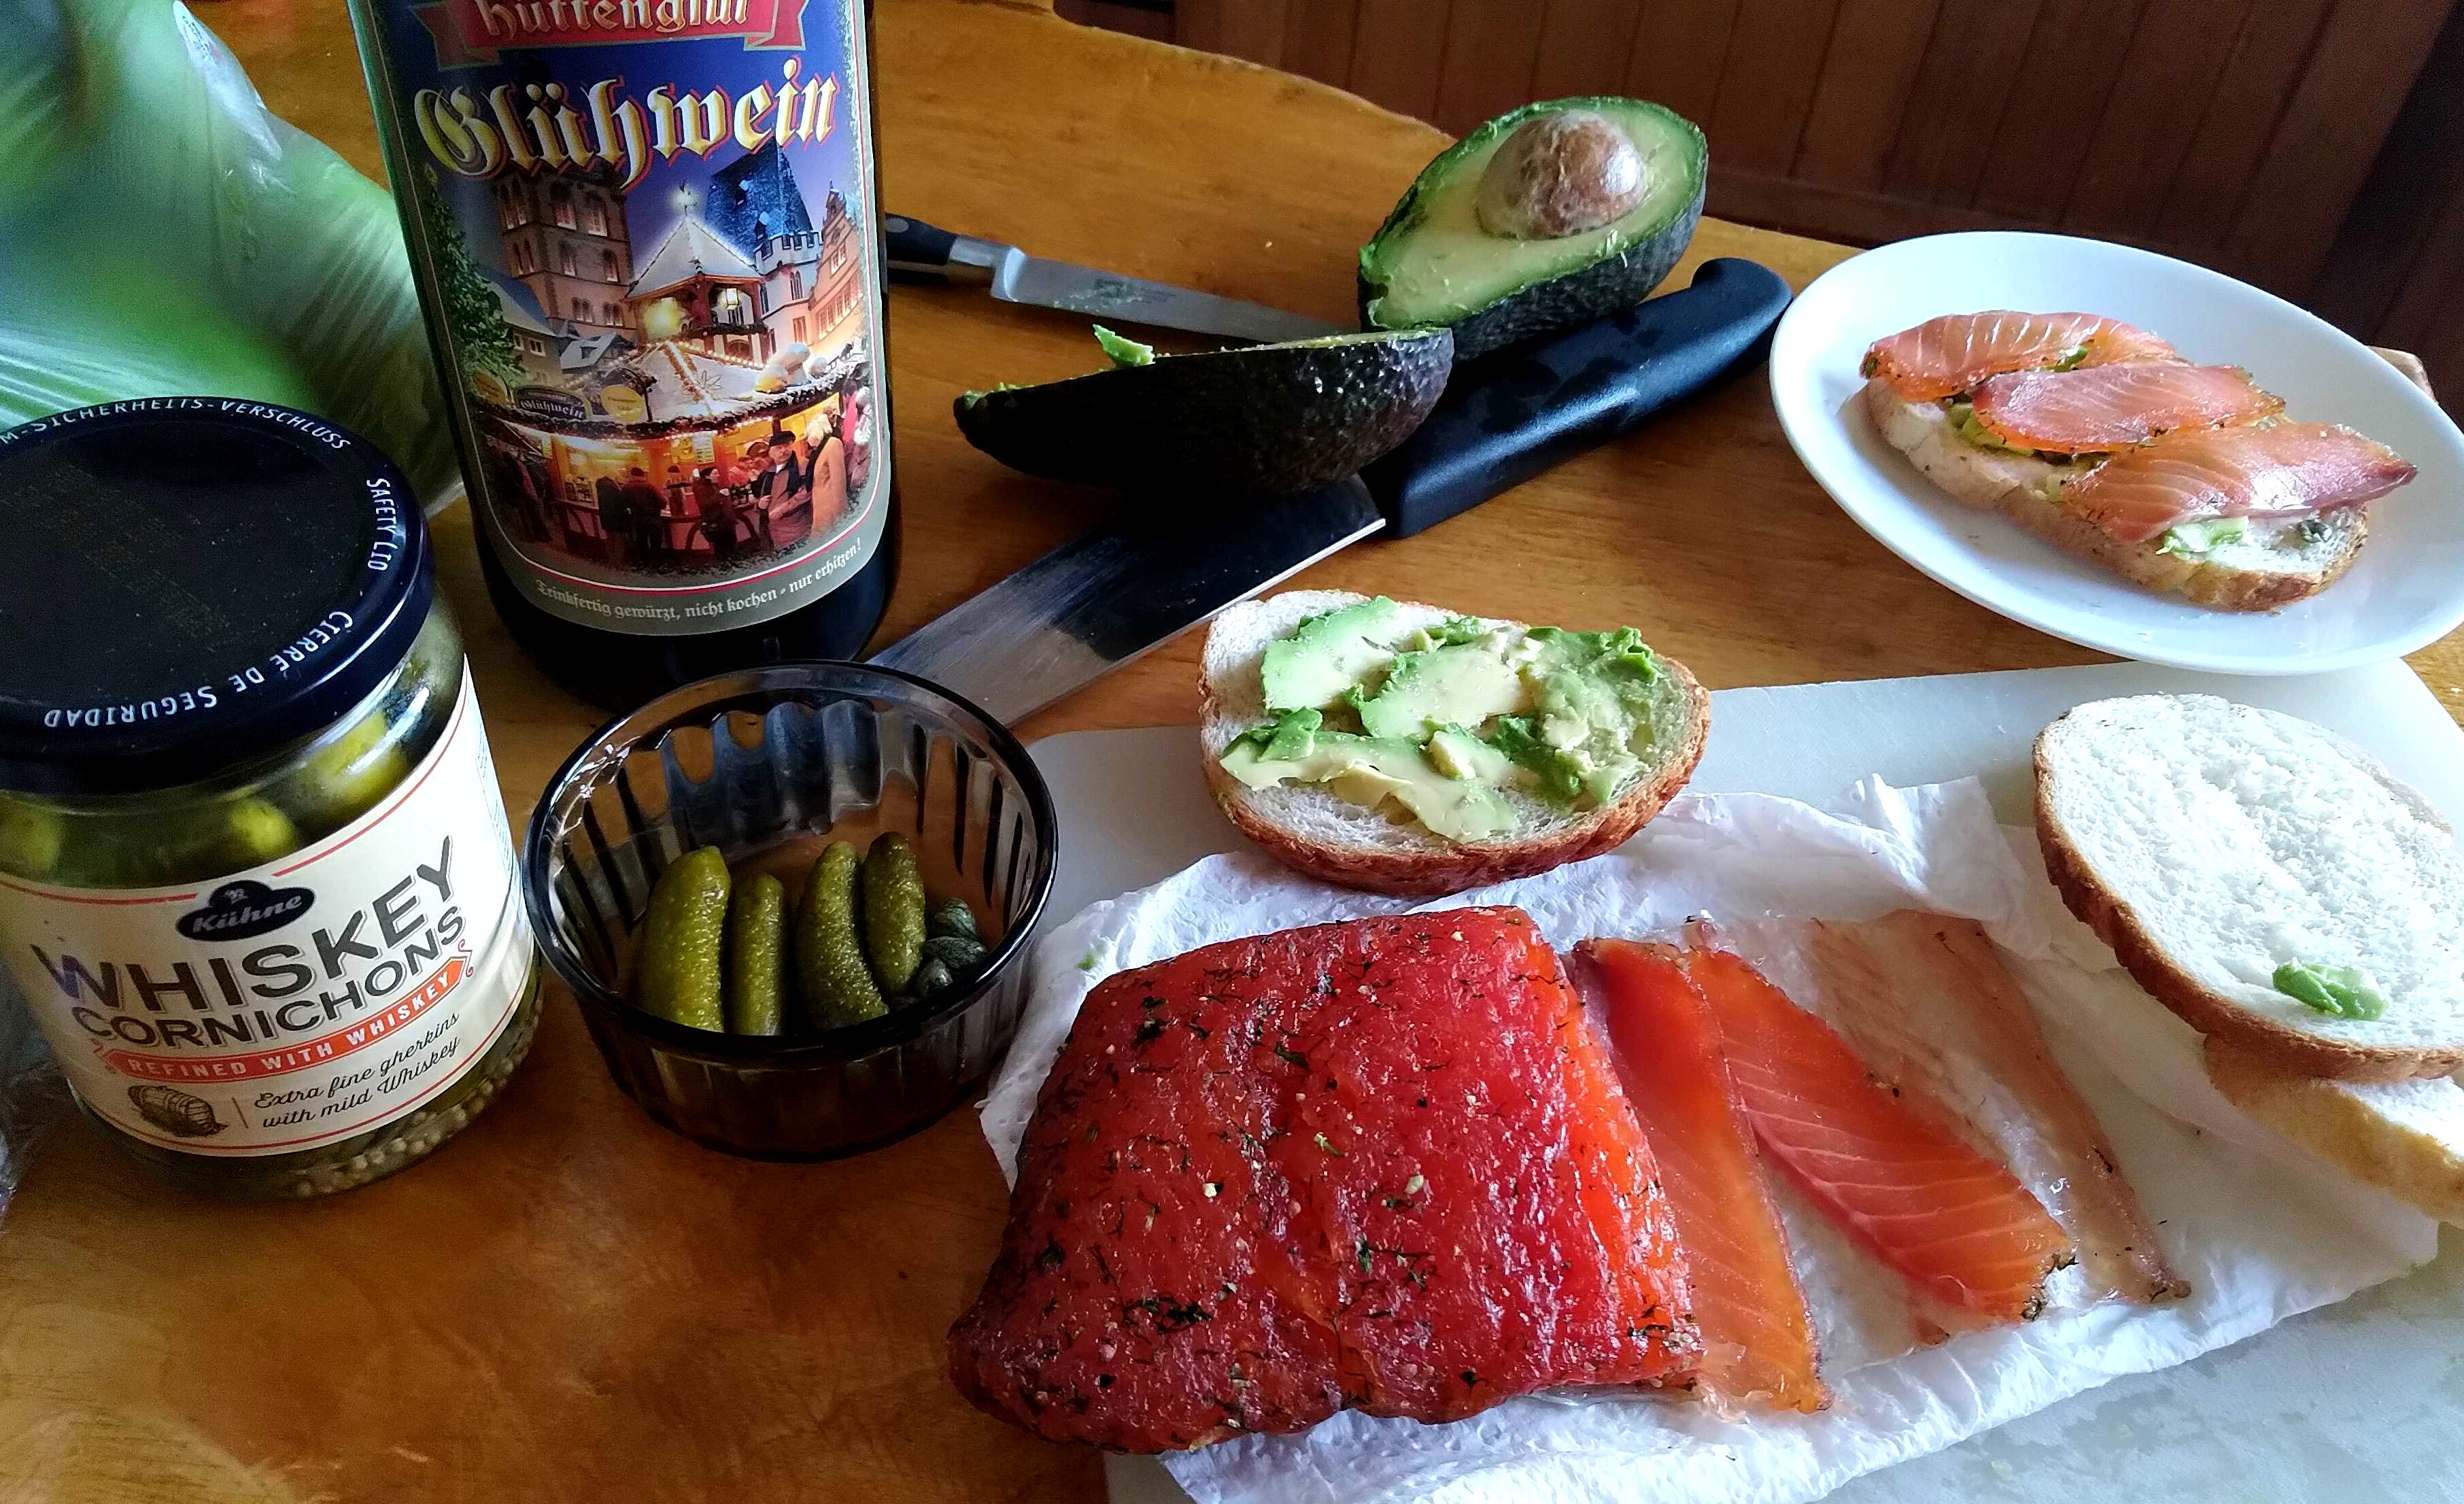 Action shot!  Thinly-sliced salmon gravlax, whisky-cured pickled gherkins, avocado toast, and mulled wine.